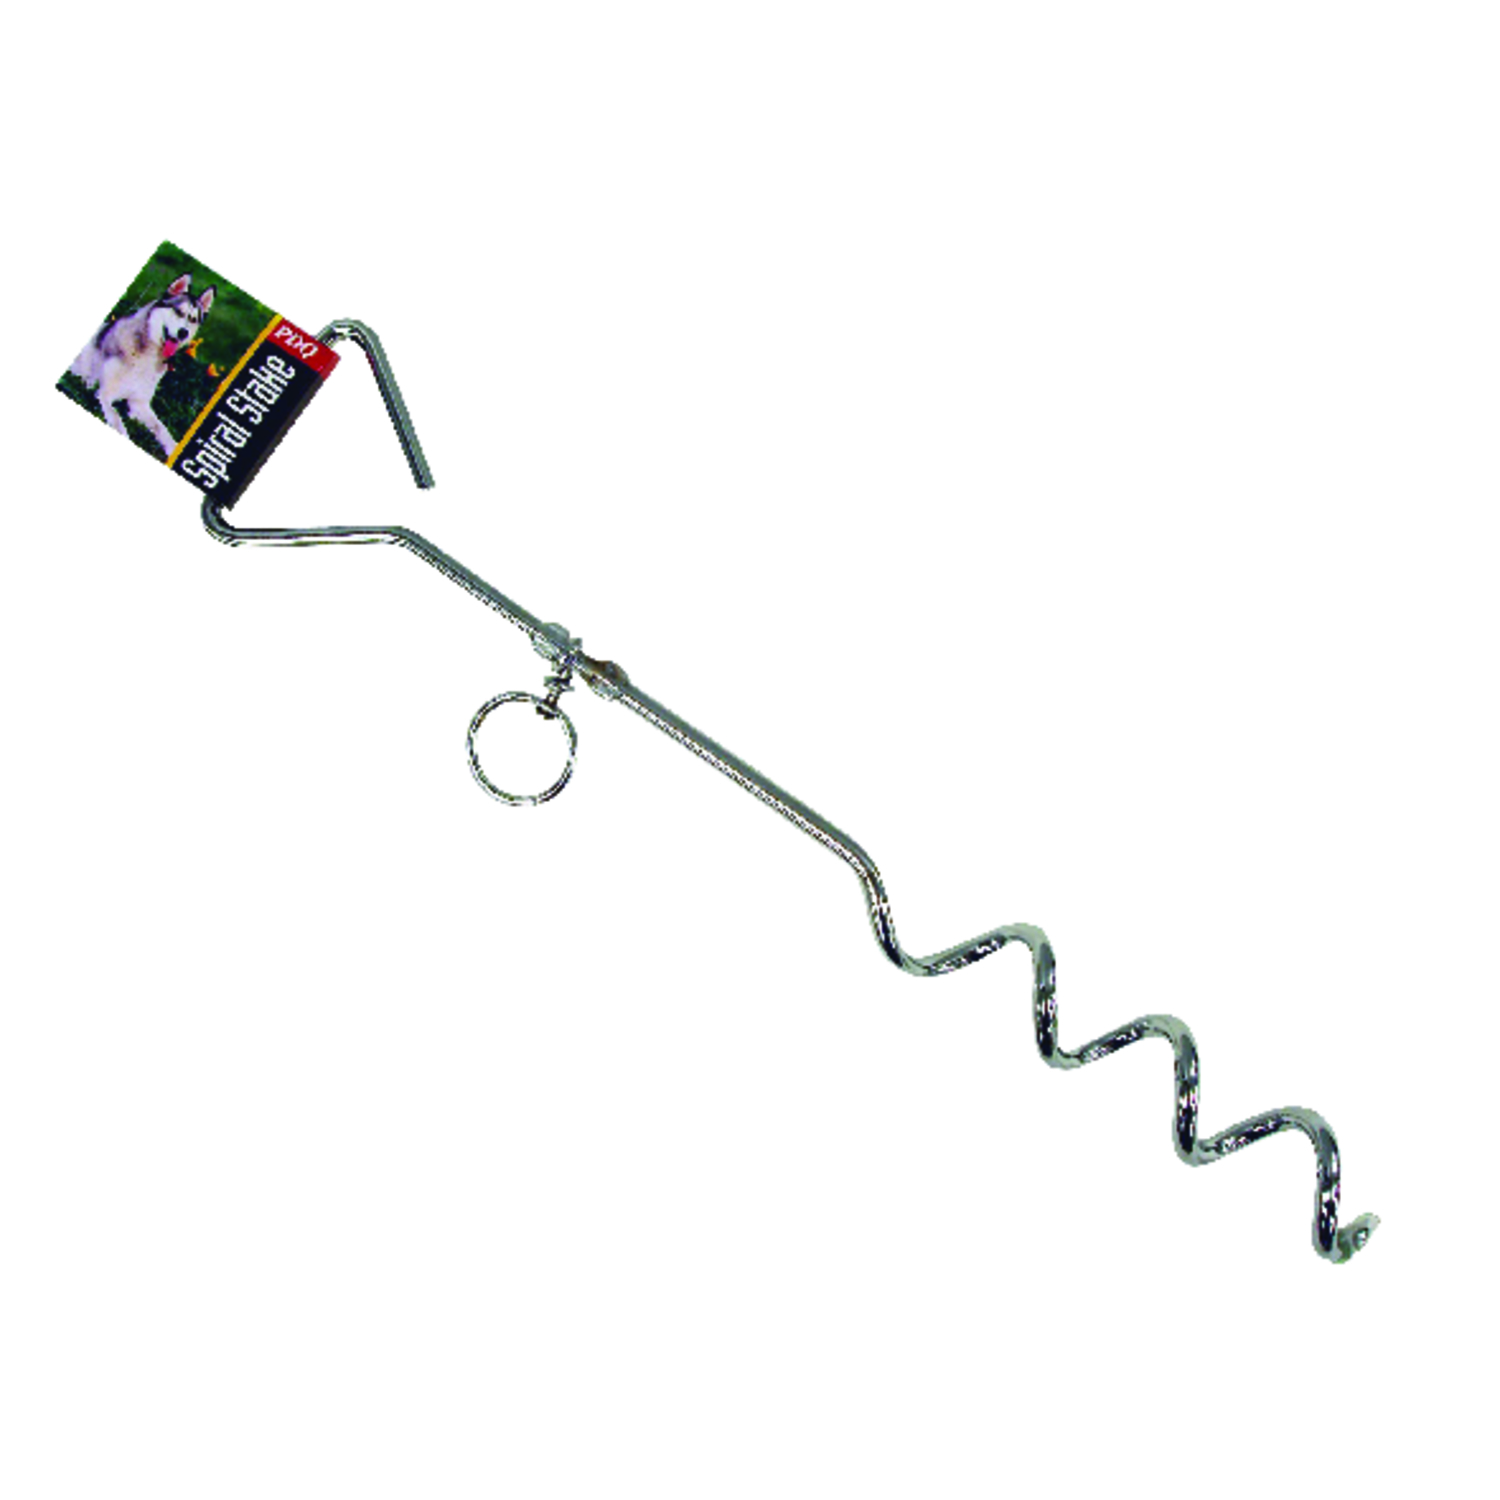 PDQ  Boss Pet  Silver  Spiral Tie Out Stake  Steel  Dog  Tie Out Stake  Large